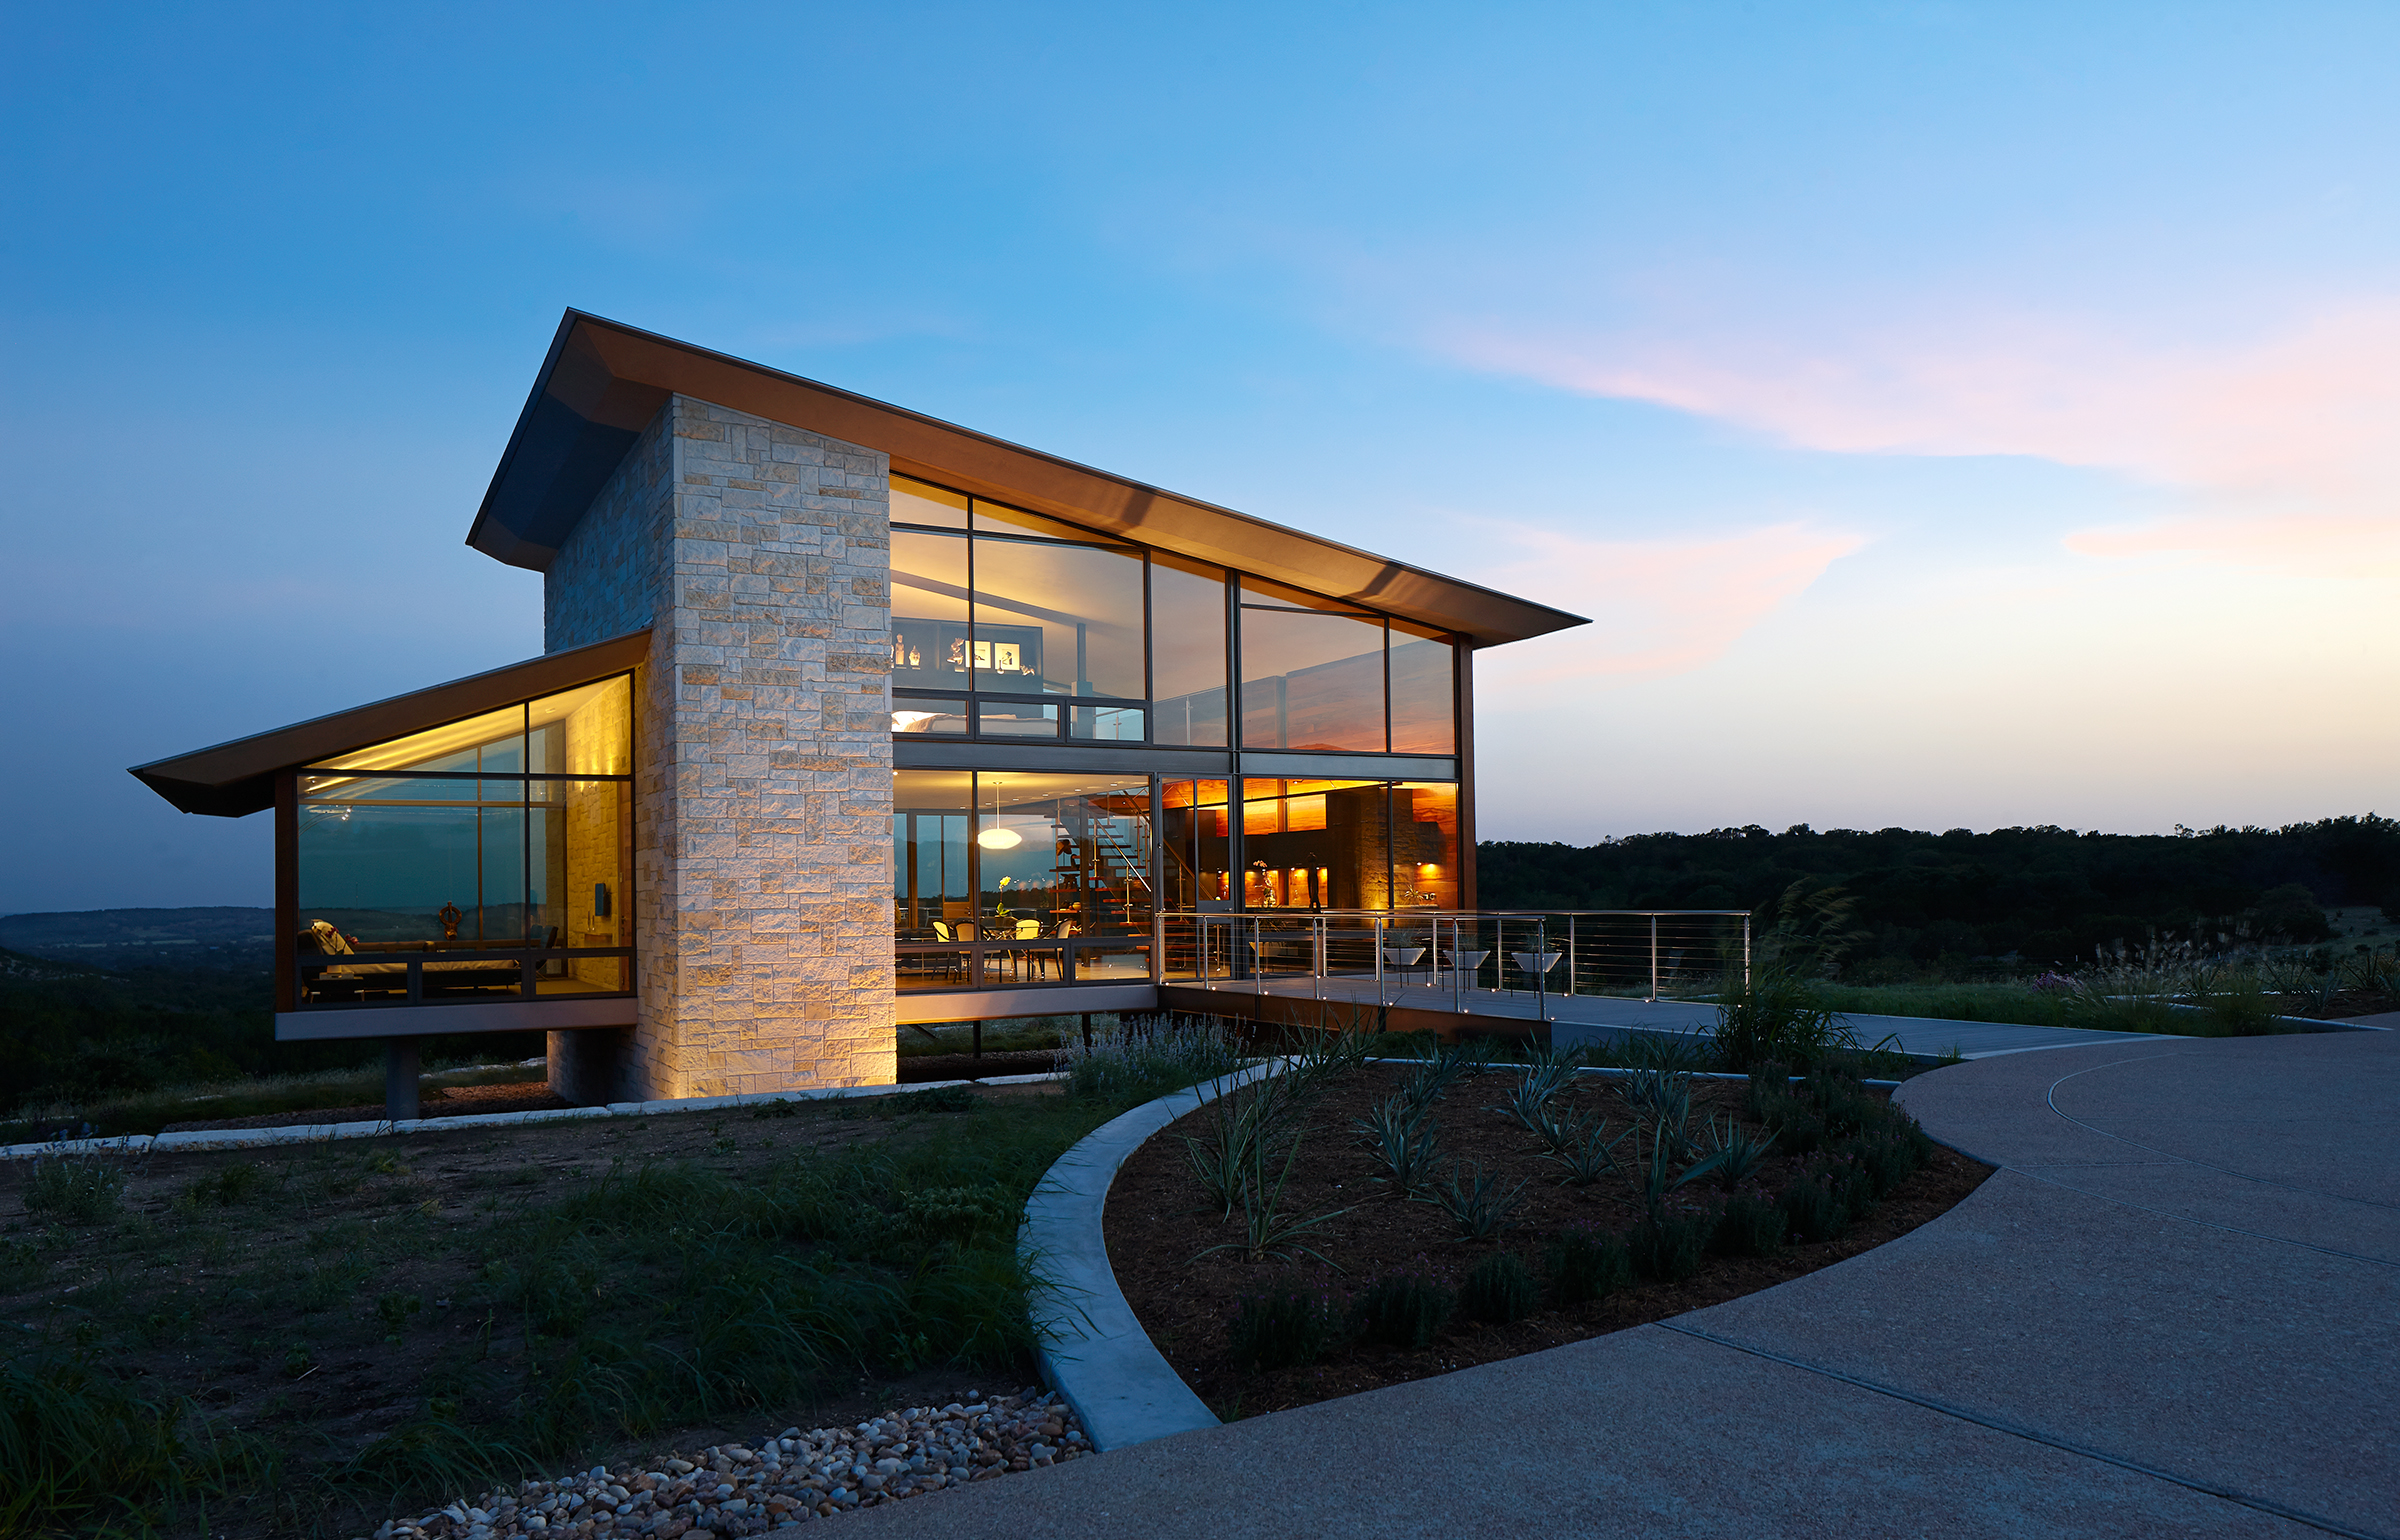 glass aia houston architecture gewinner modern award texas awards jim houses residential fredericksburg designs residence contemporary homes hill tx architectural